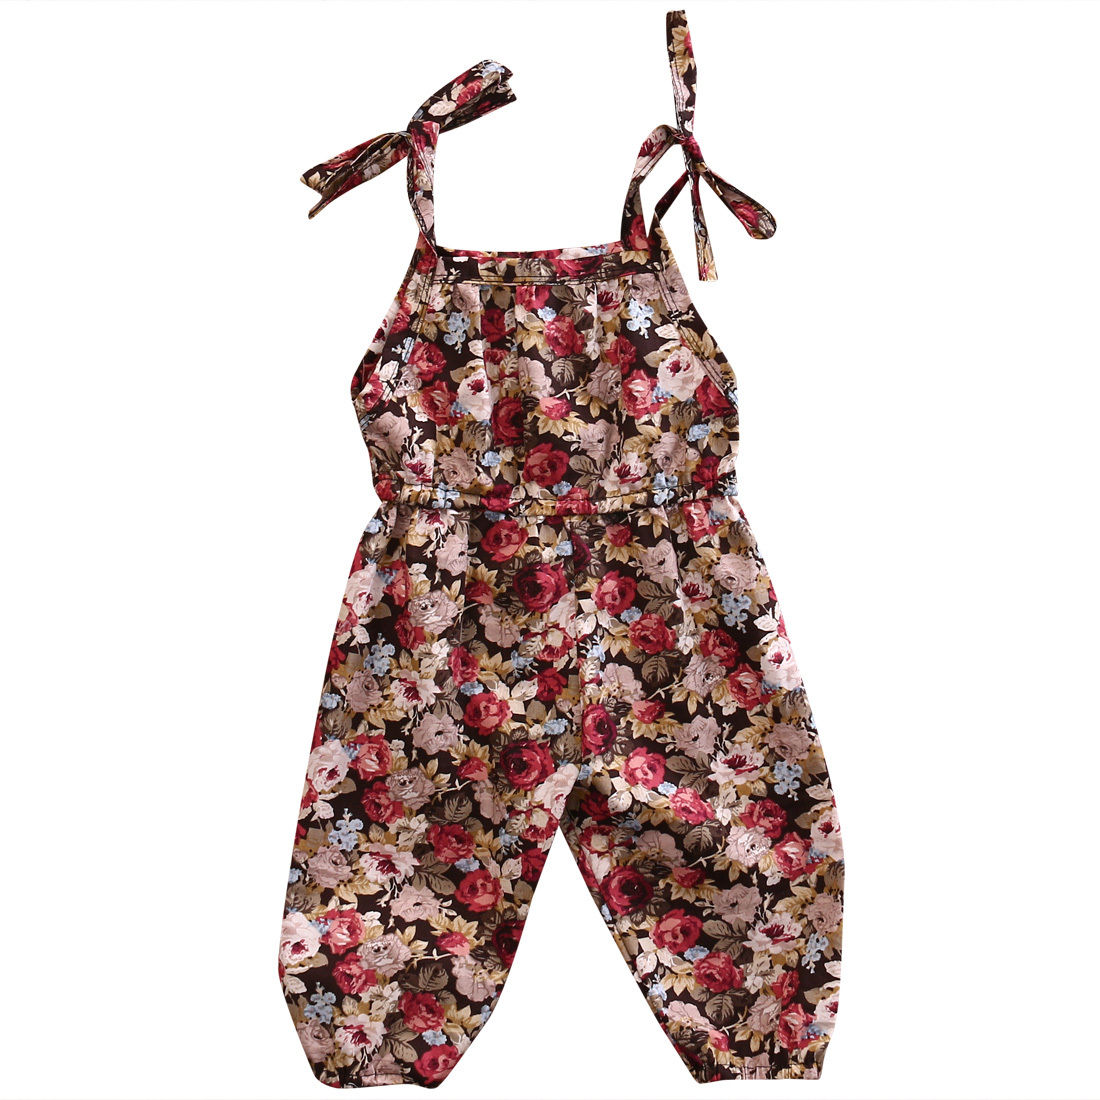 Newborn Toddler Infant Baby Girls Clothes Flower Print   Romper   Jumpsuit Sleeveless Sunsuit Clothes 0-3T